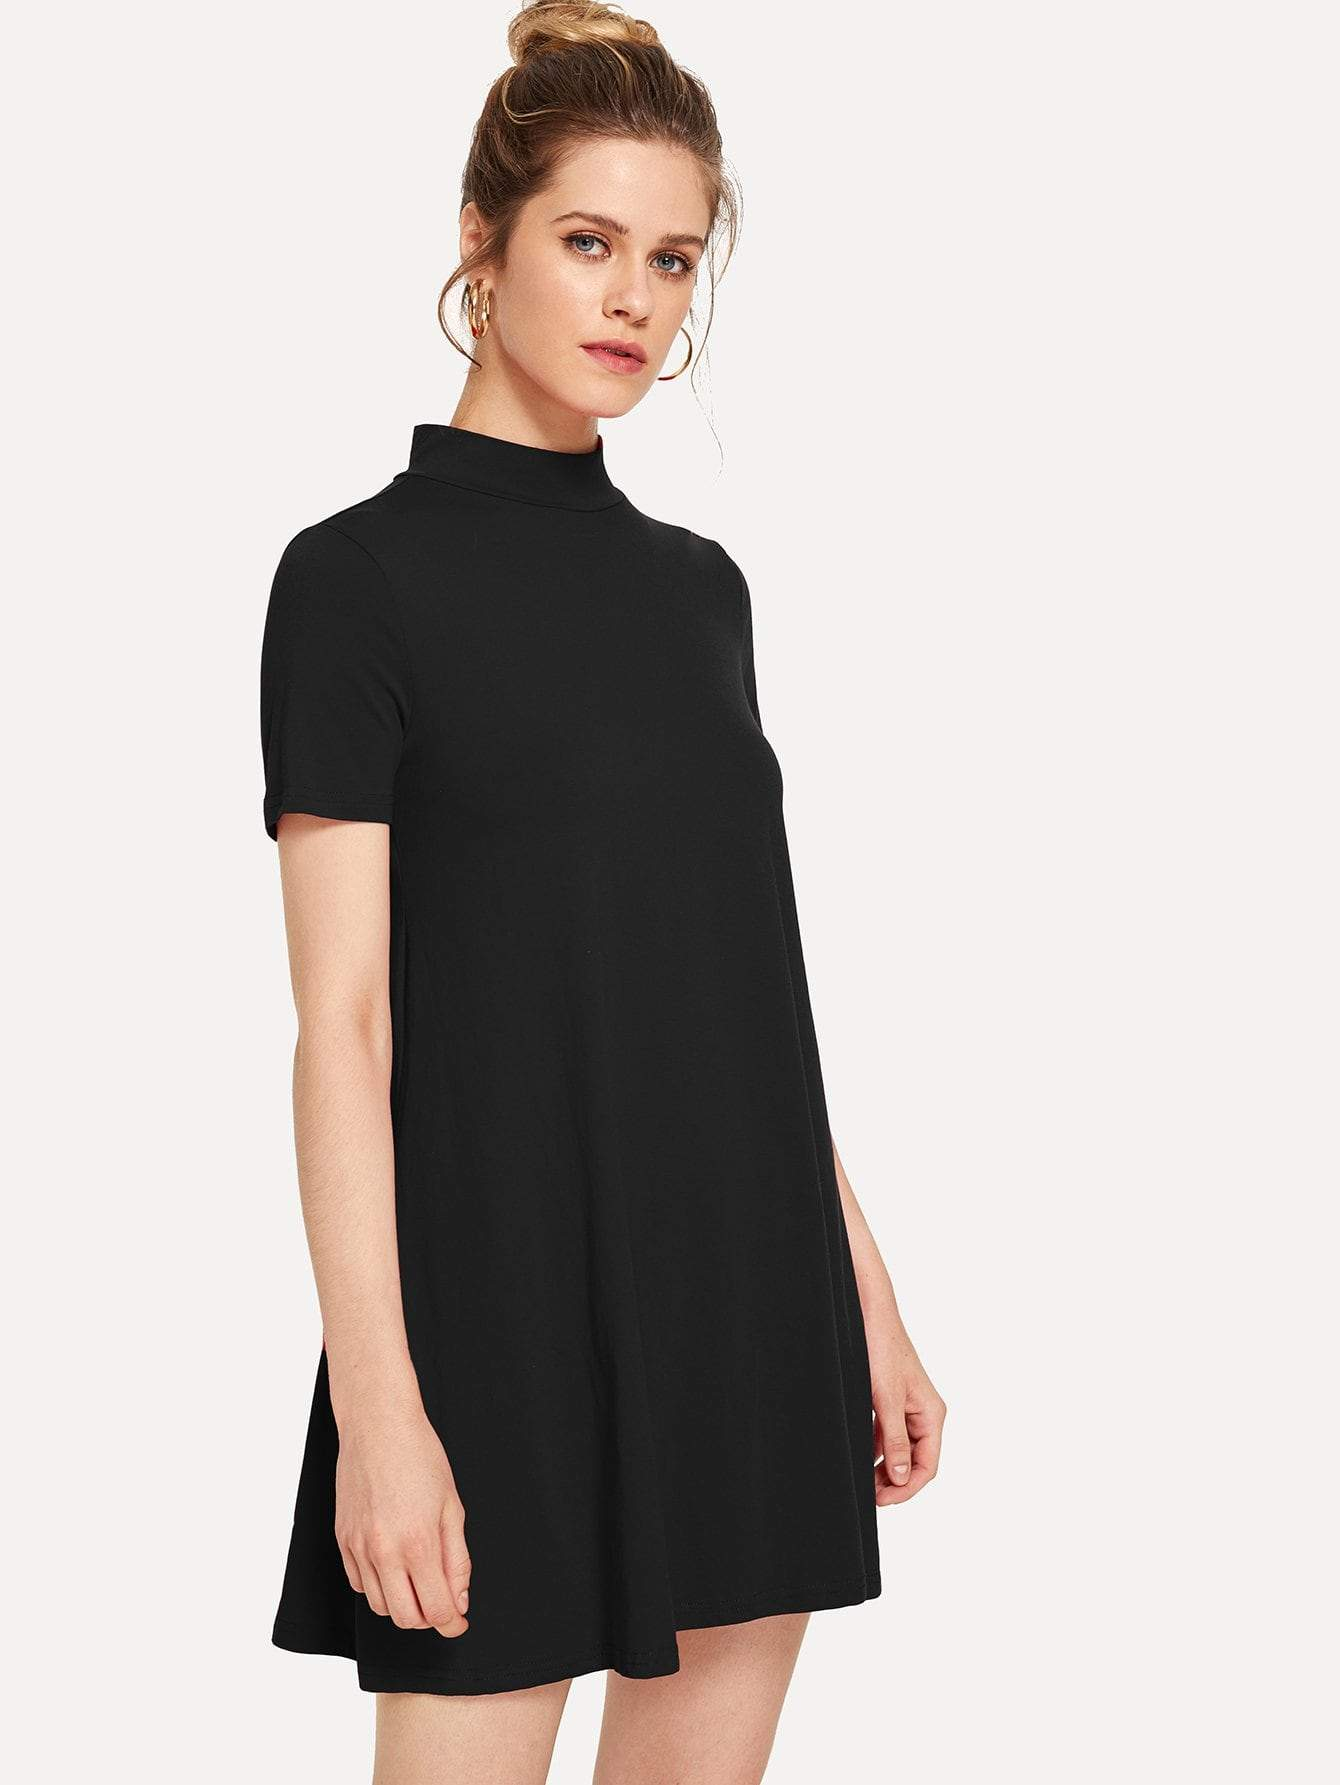 Solid Swing Jersey Dress - LoveSylvester